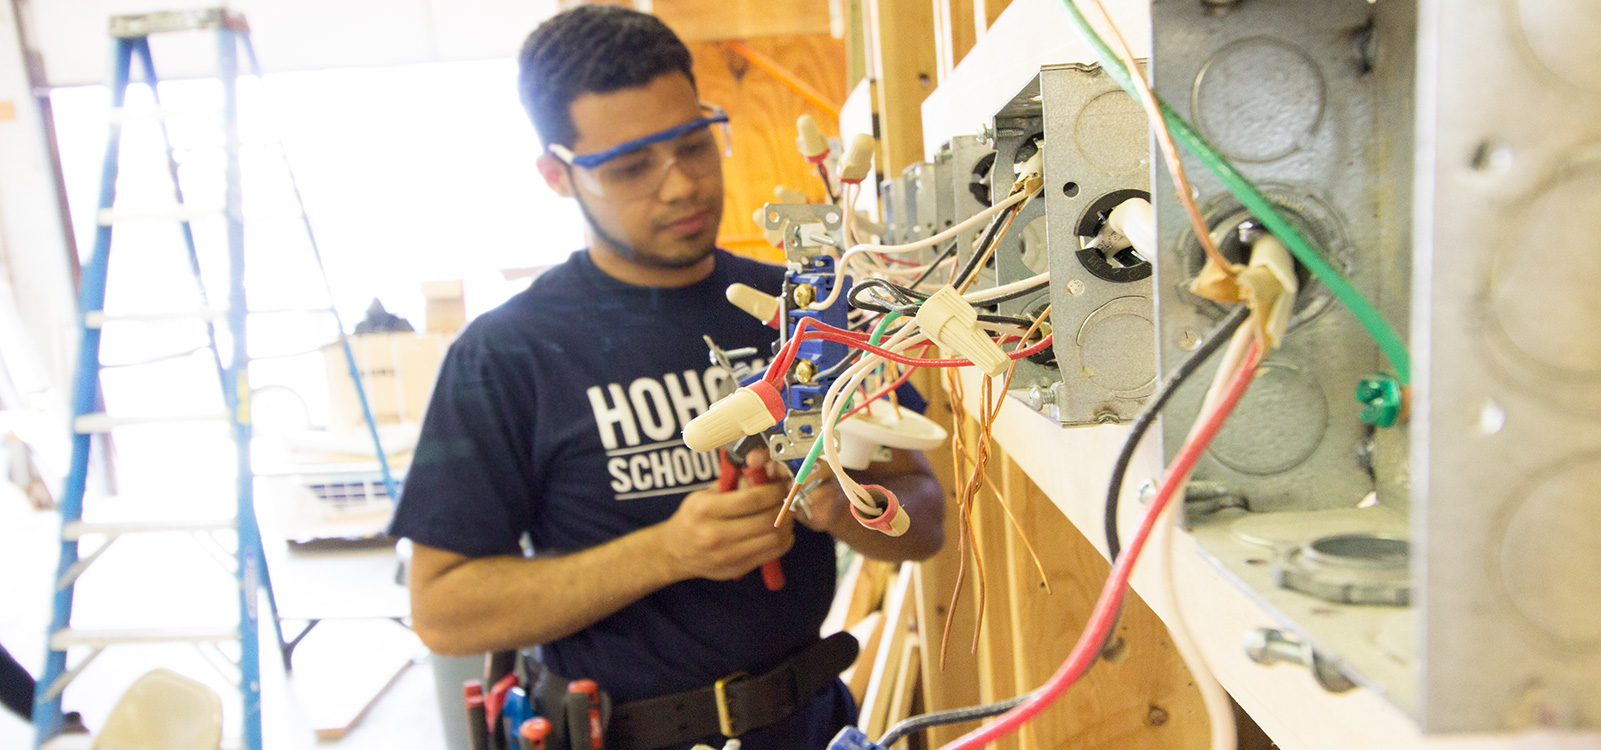 Electrician Apprenticeship Diploma Program - Paterson, NJ